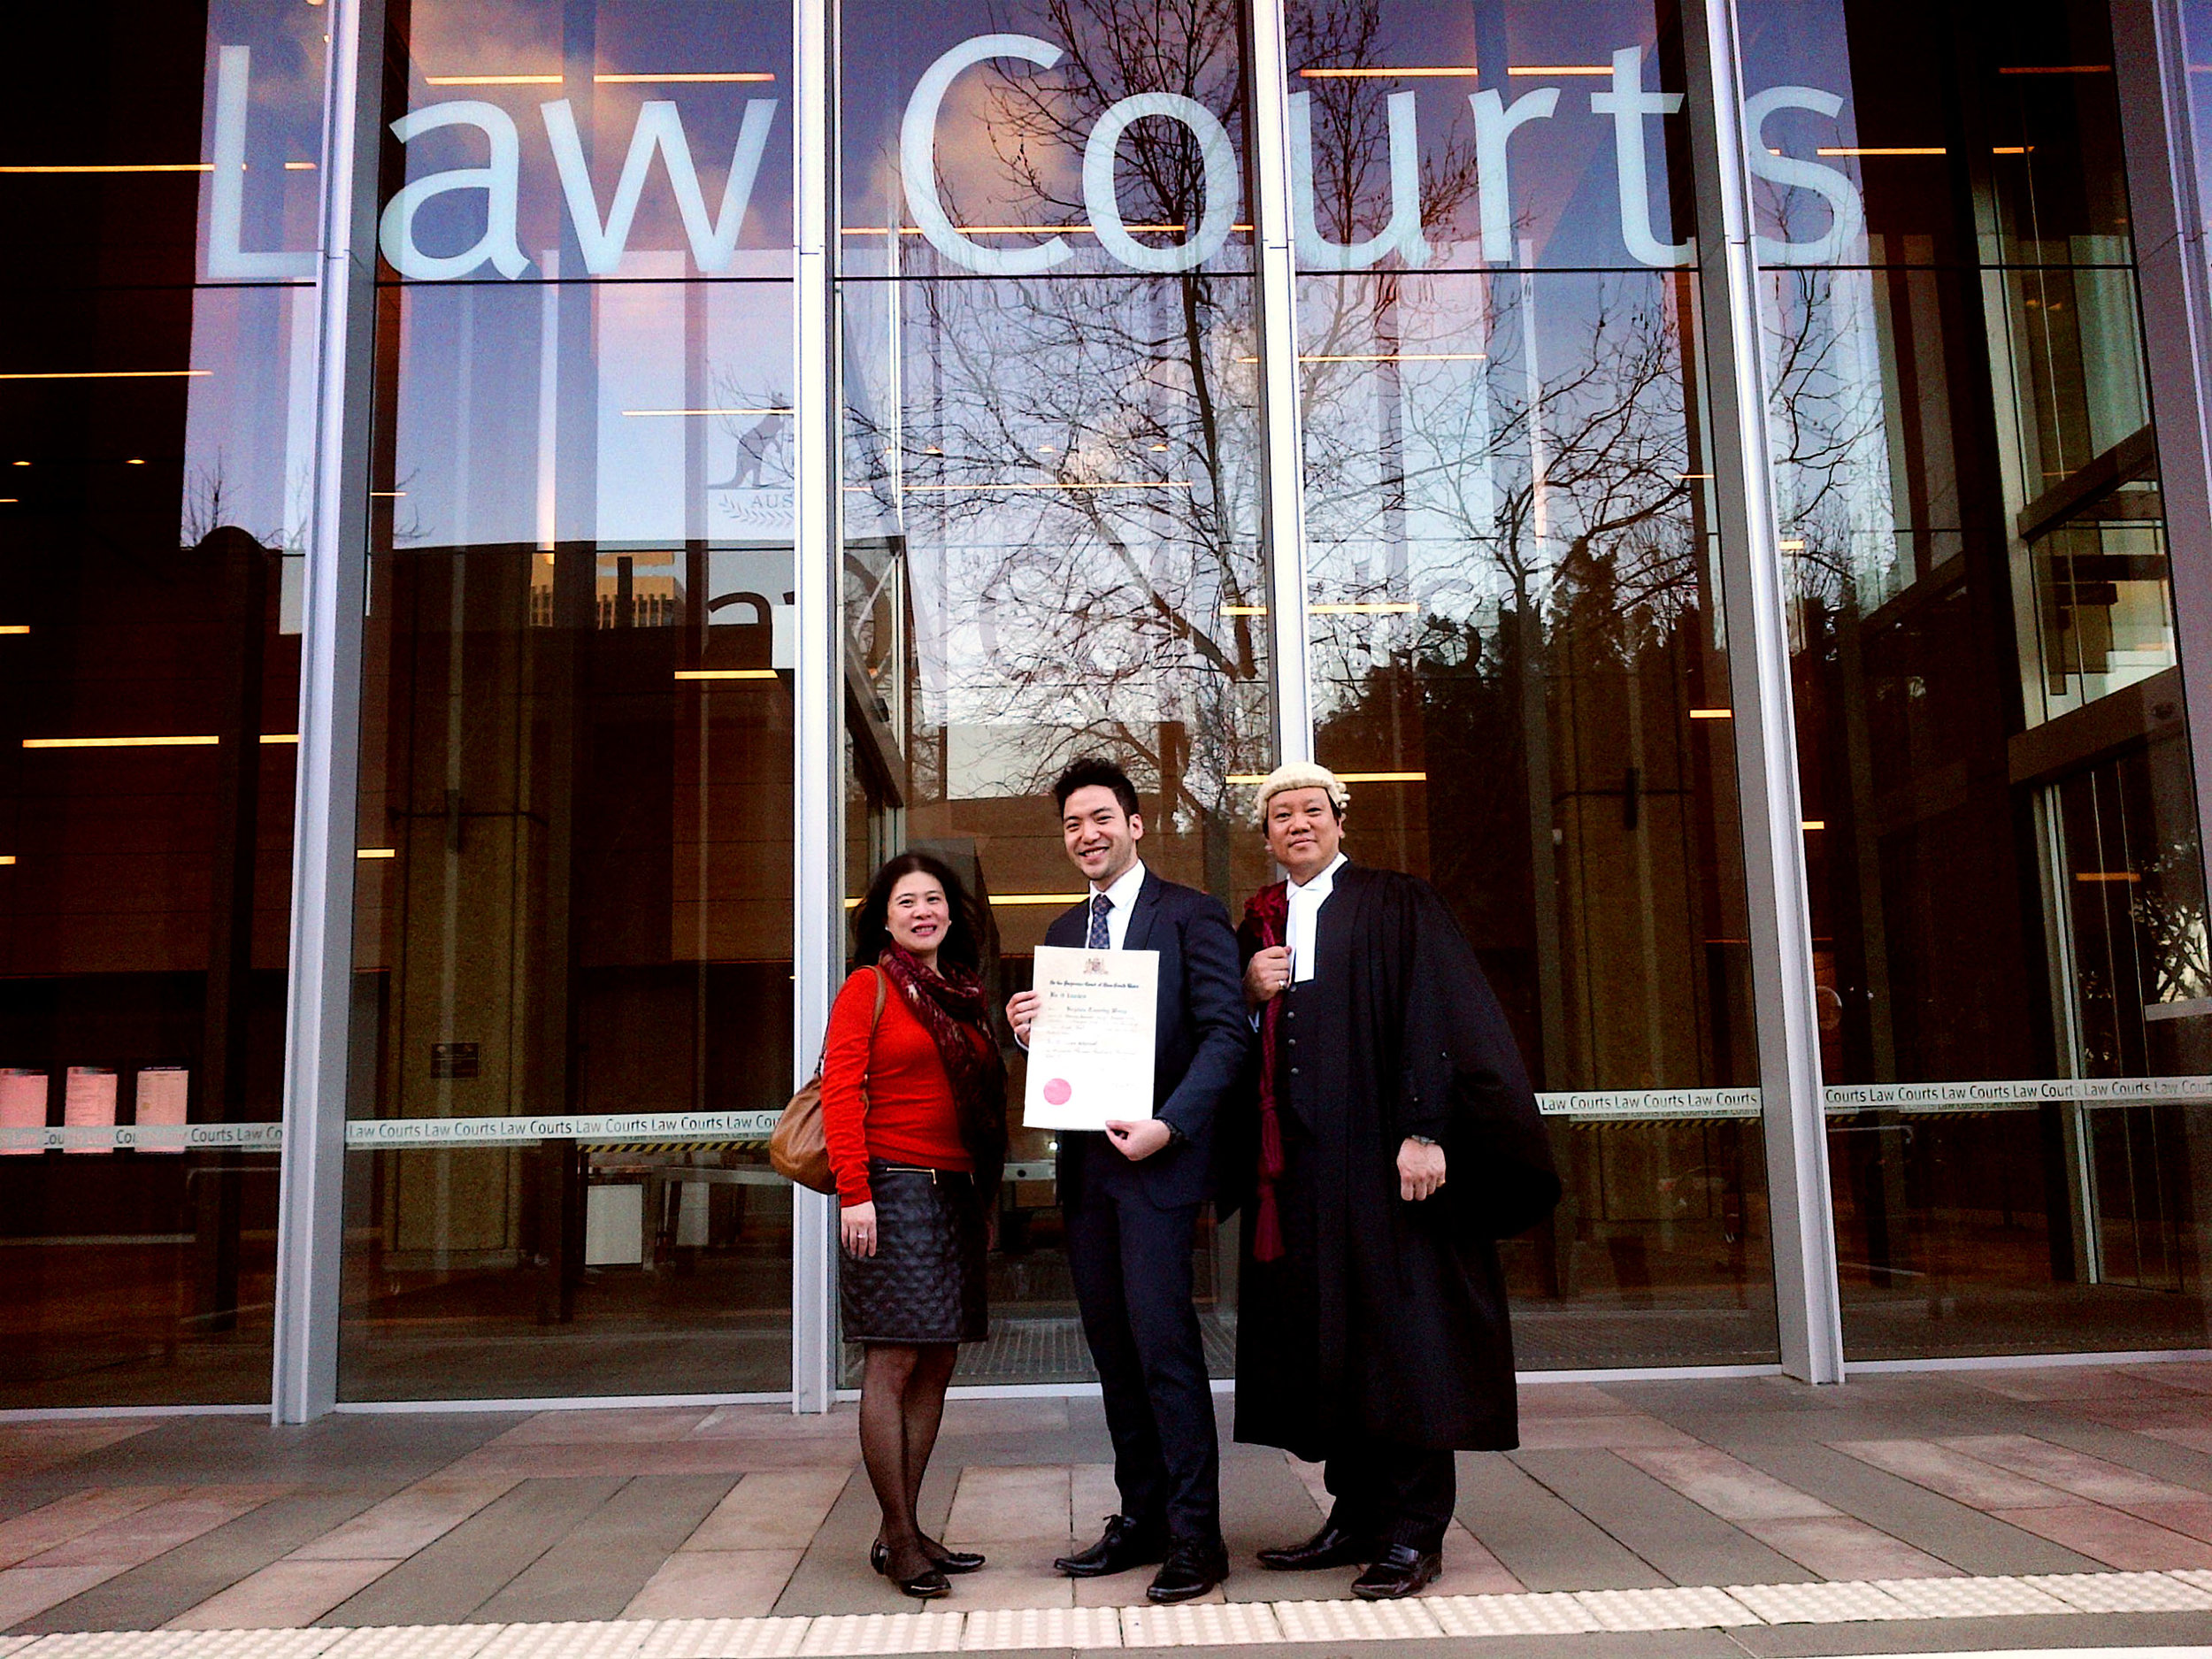 Moving my former Senior Legal Assistant's admission in the Supreme Court of New South Wales